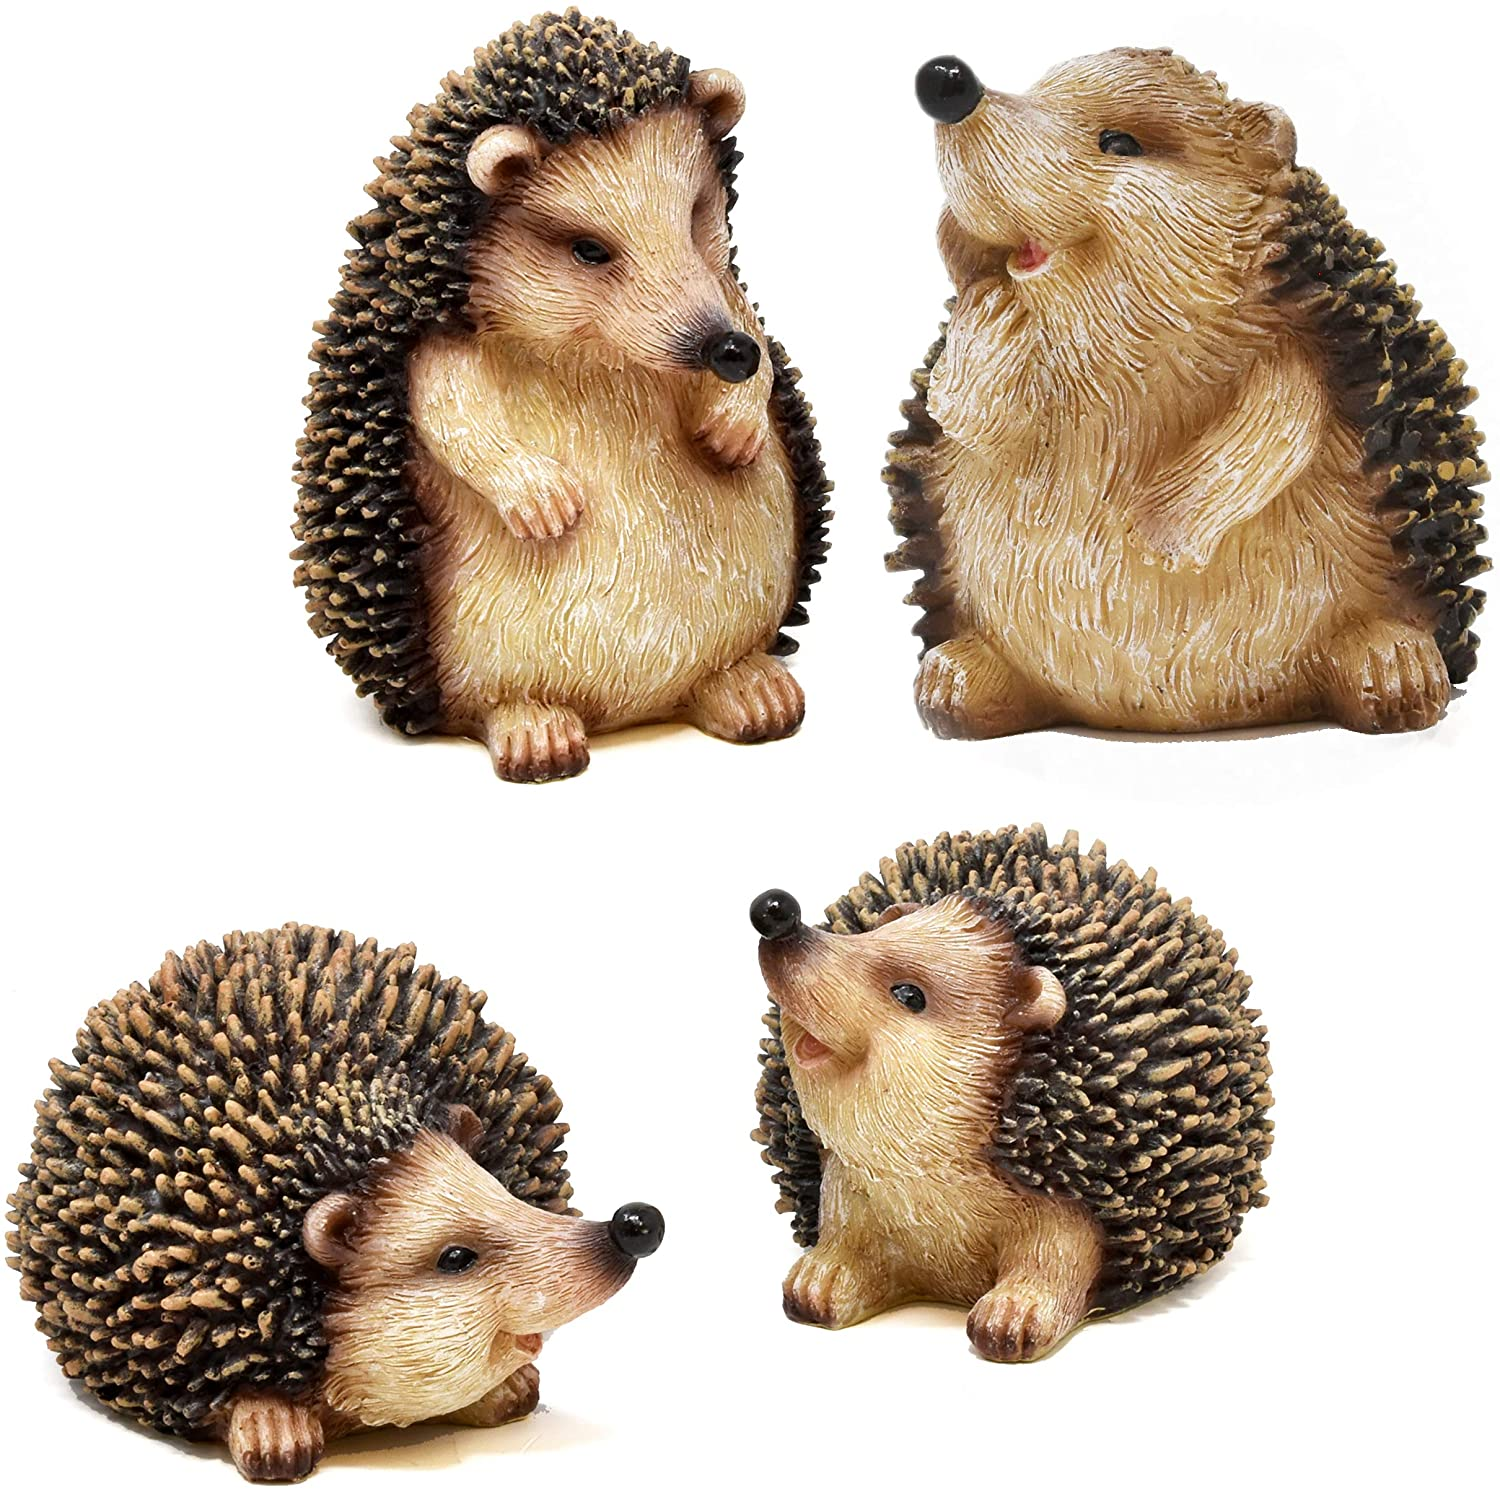 Gift Boutique Mini Hedgehog Figurine Fairy Garden Statue Set of 4 Resin Figurines Lawn Miniature Micro Landscape Animal Outdoor Patio Yard Small Decor Statues Ornament Decorations Garden Sculptures